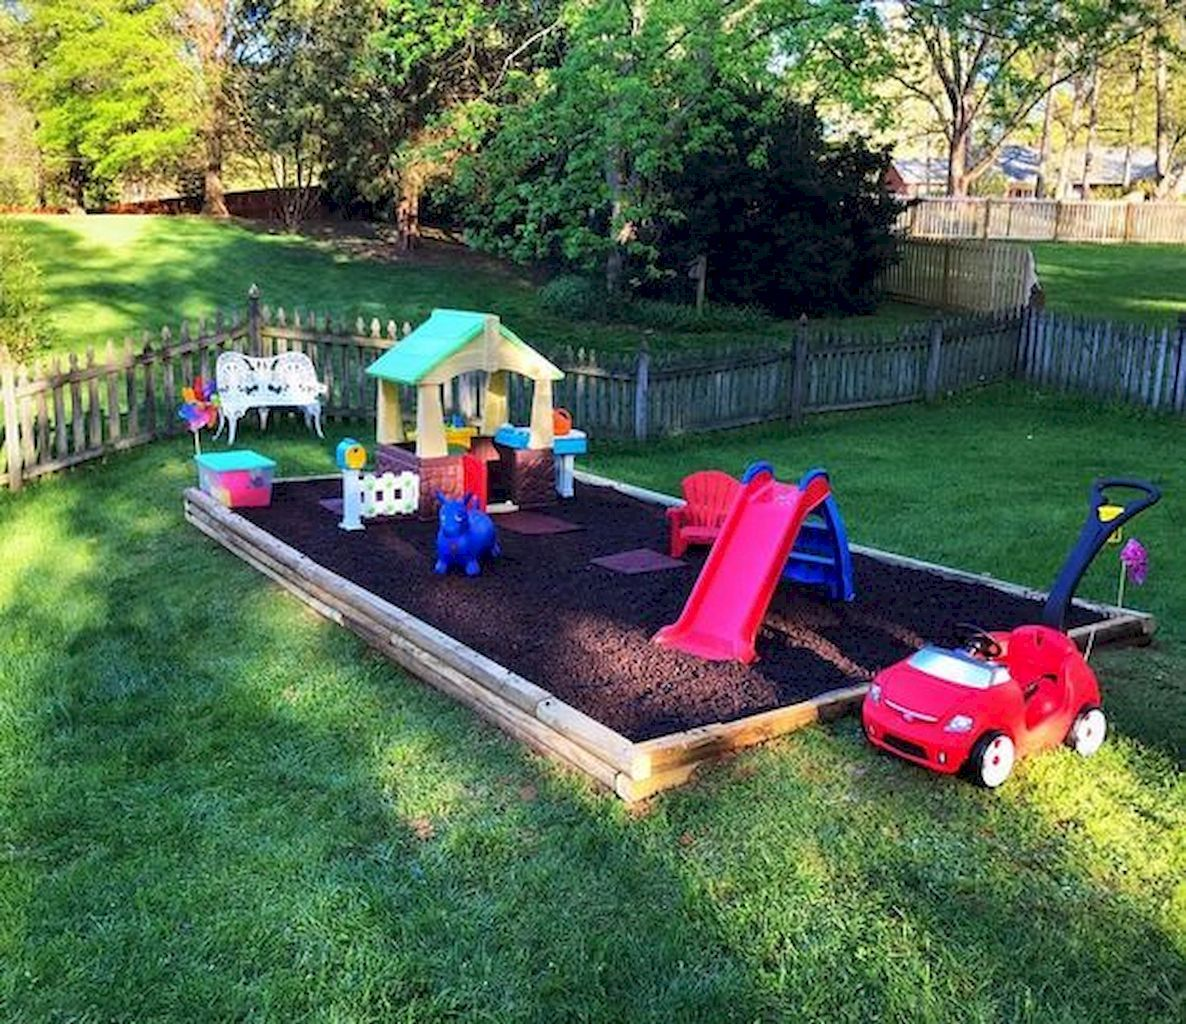 65 Affordable Kids Garden Ideas With Outdoor Play Areas images